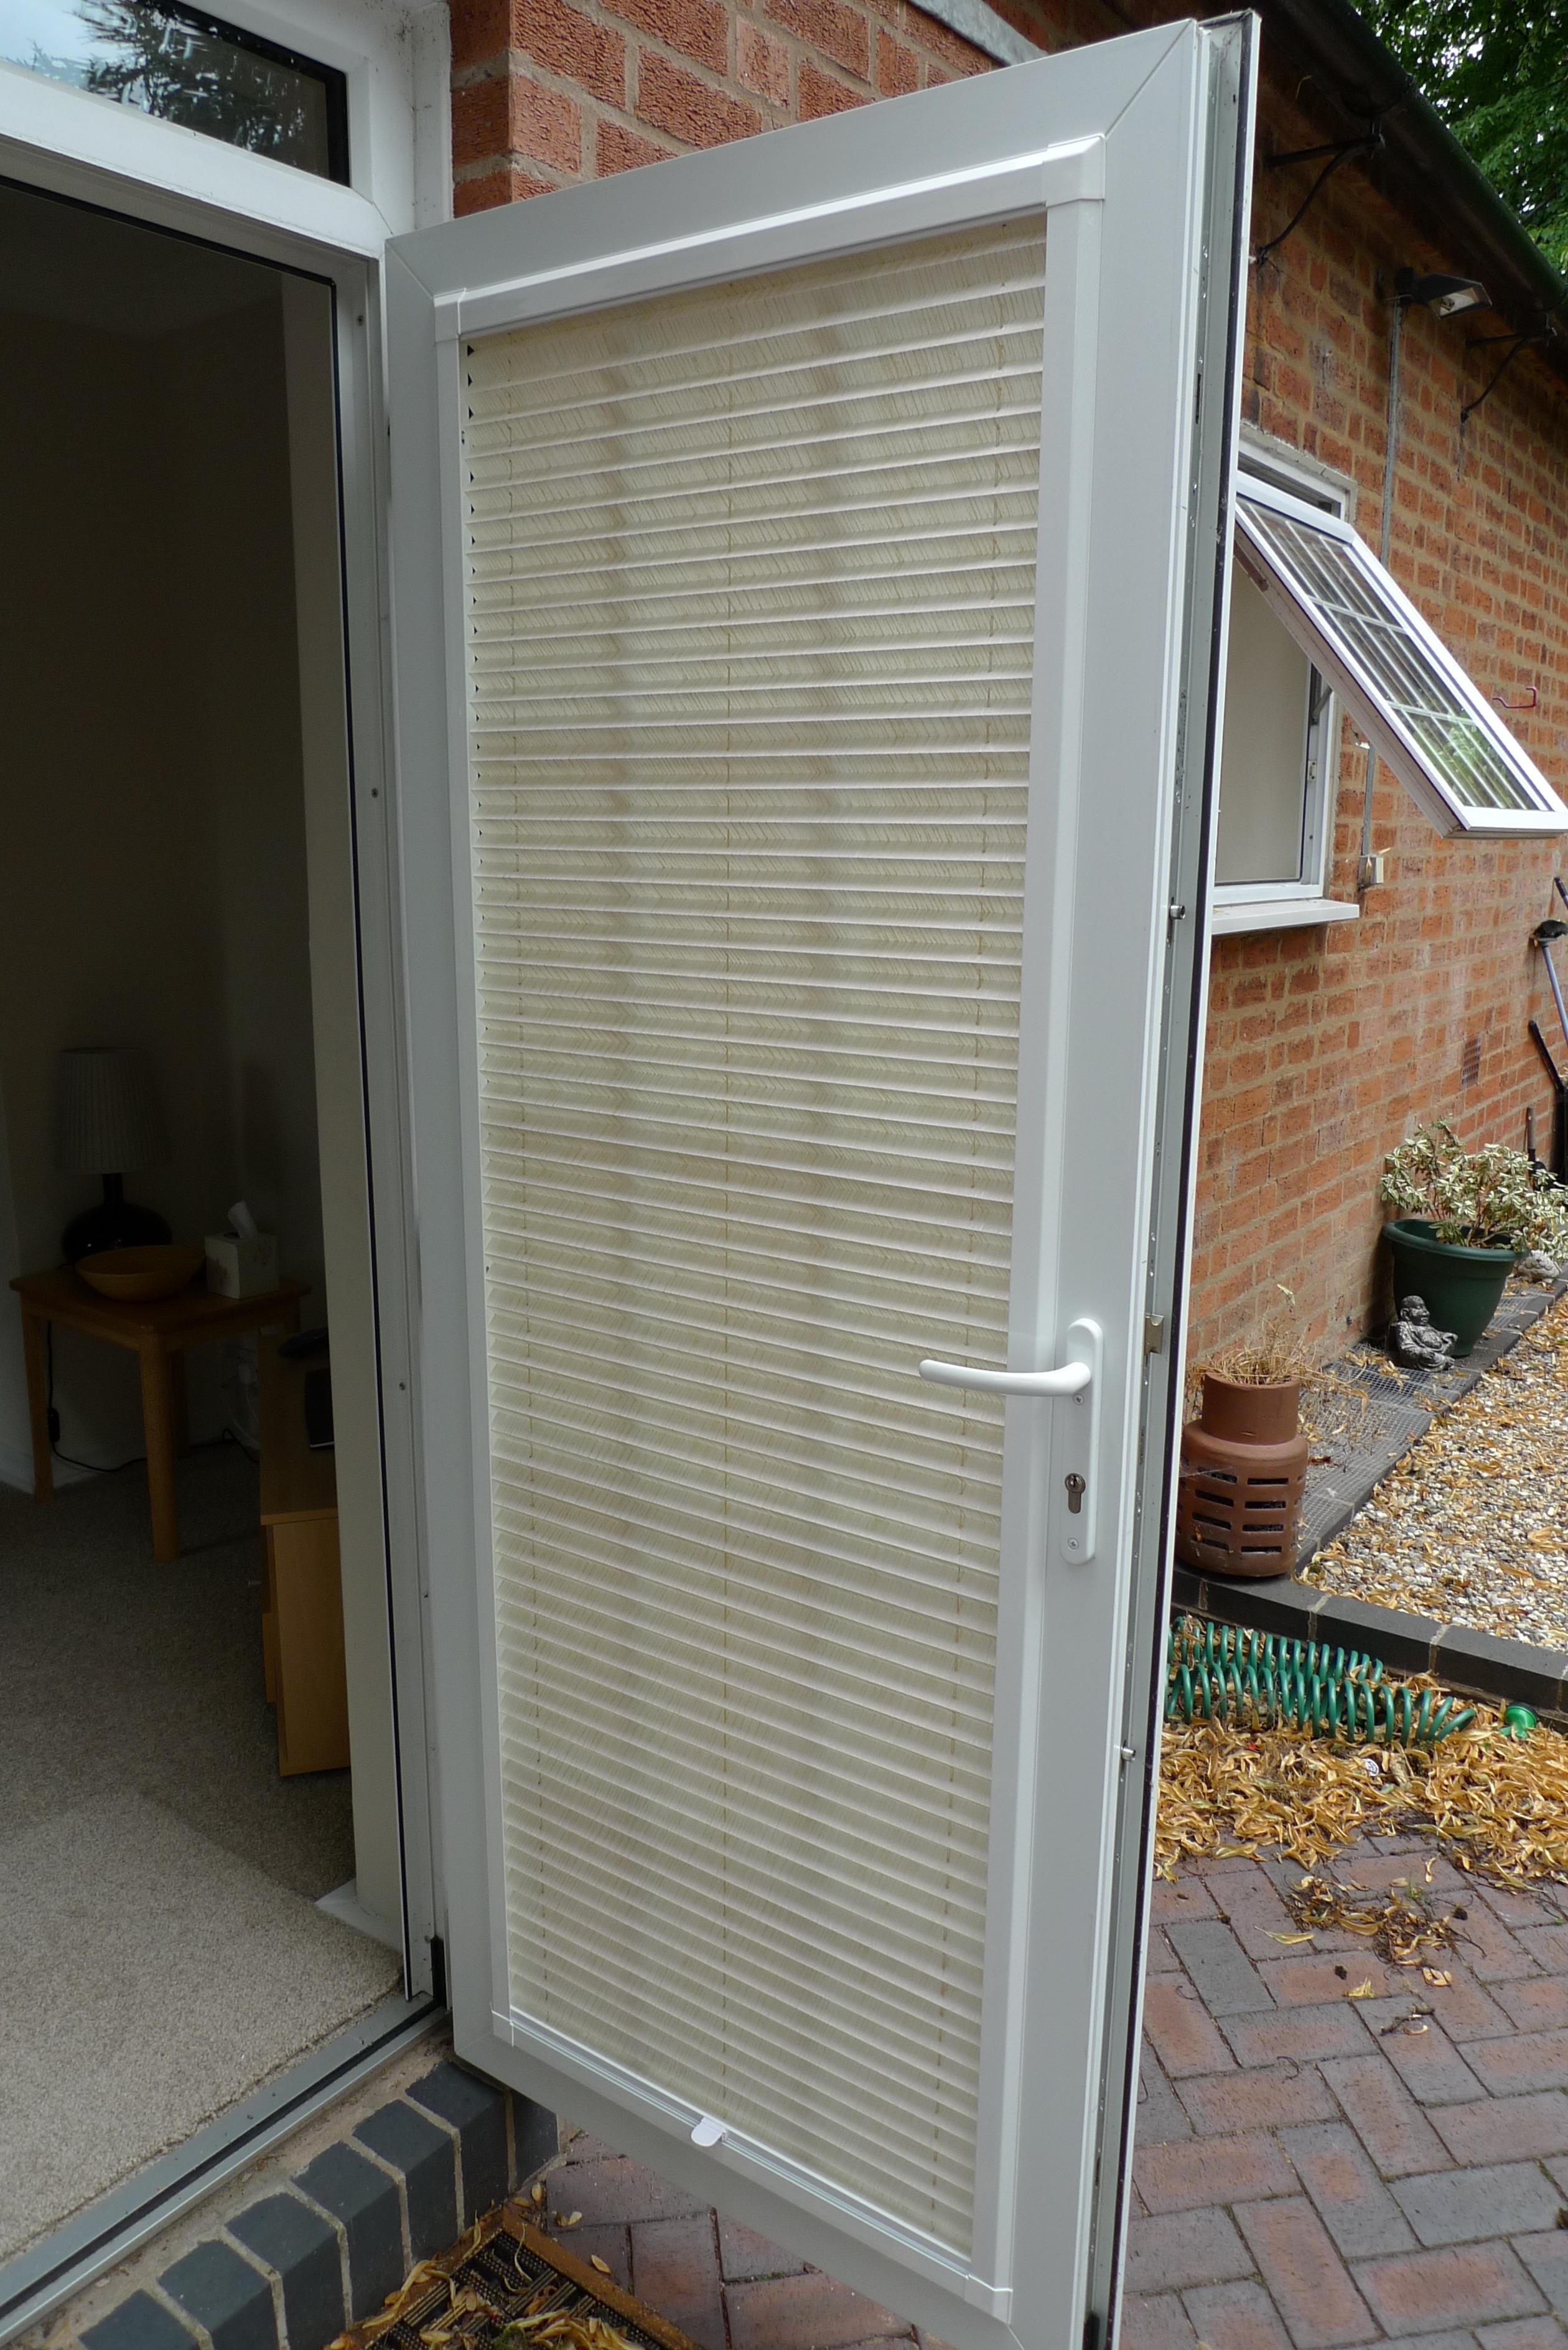 bow window blinds fitting at how to install window bay windows curved blinds blinds for bow windows vertical